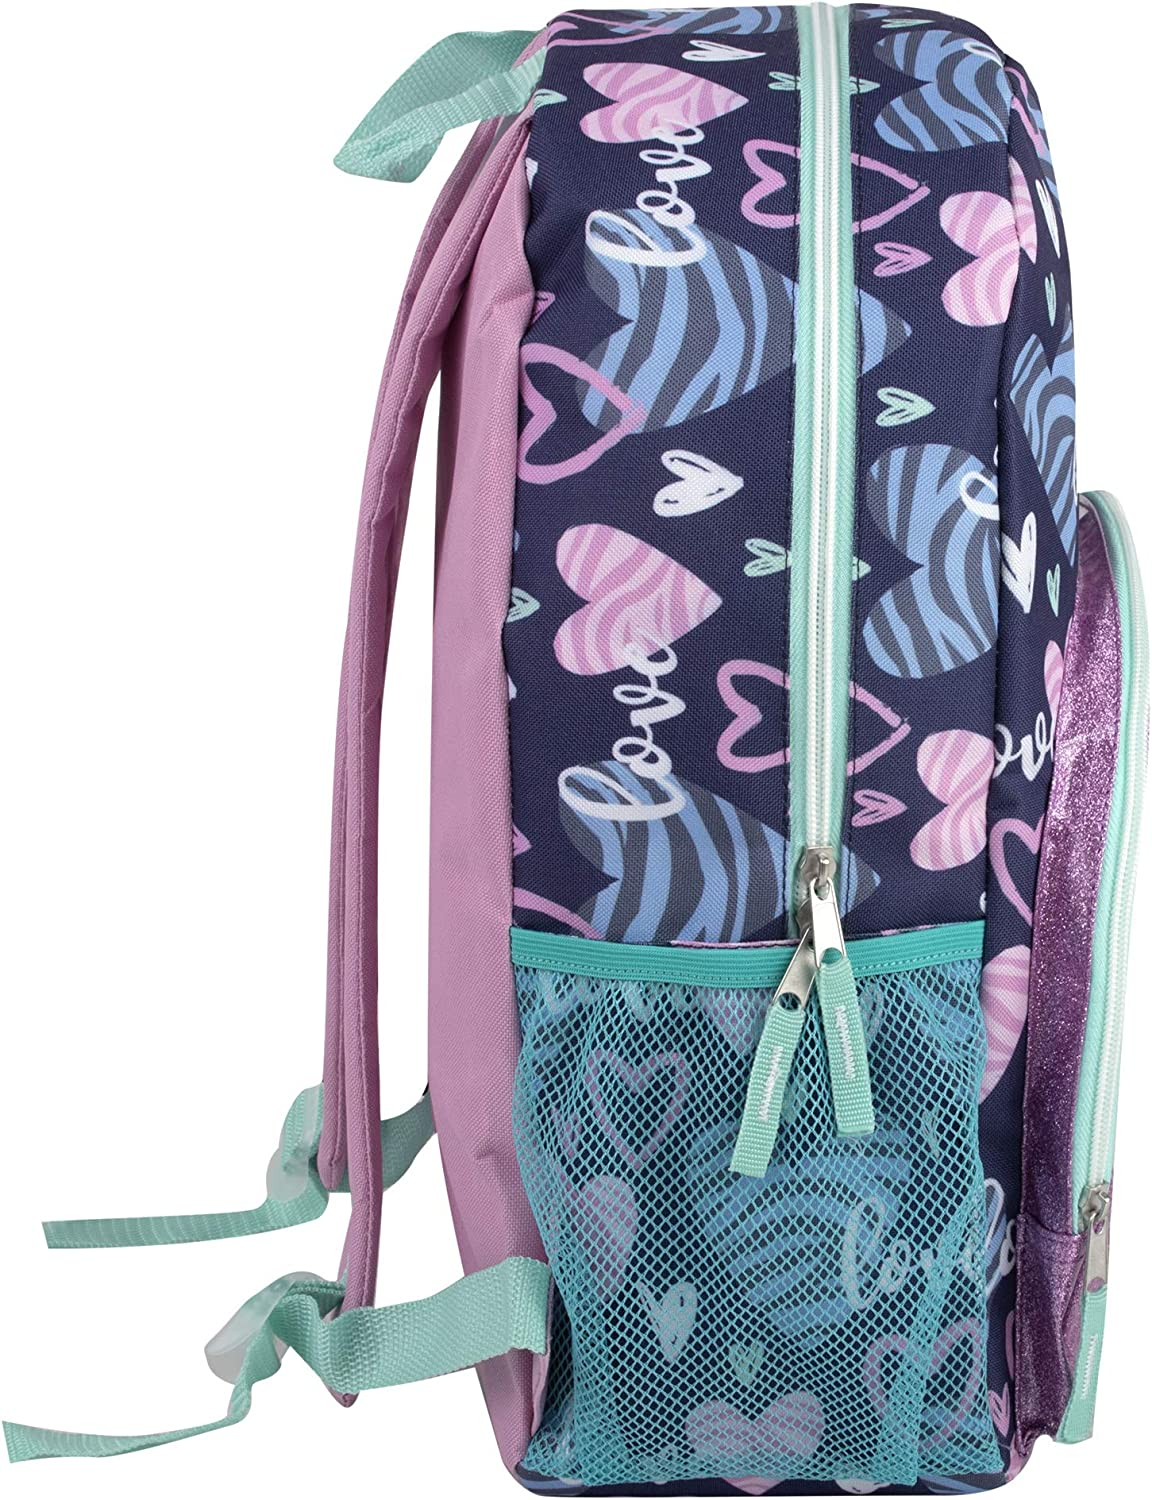 Rocketships Backpack with Pencil Case for Kids 17 Inch School Backpack Set for Girls and Boys